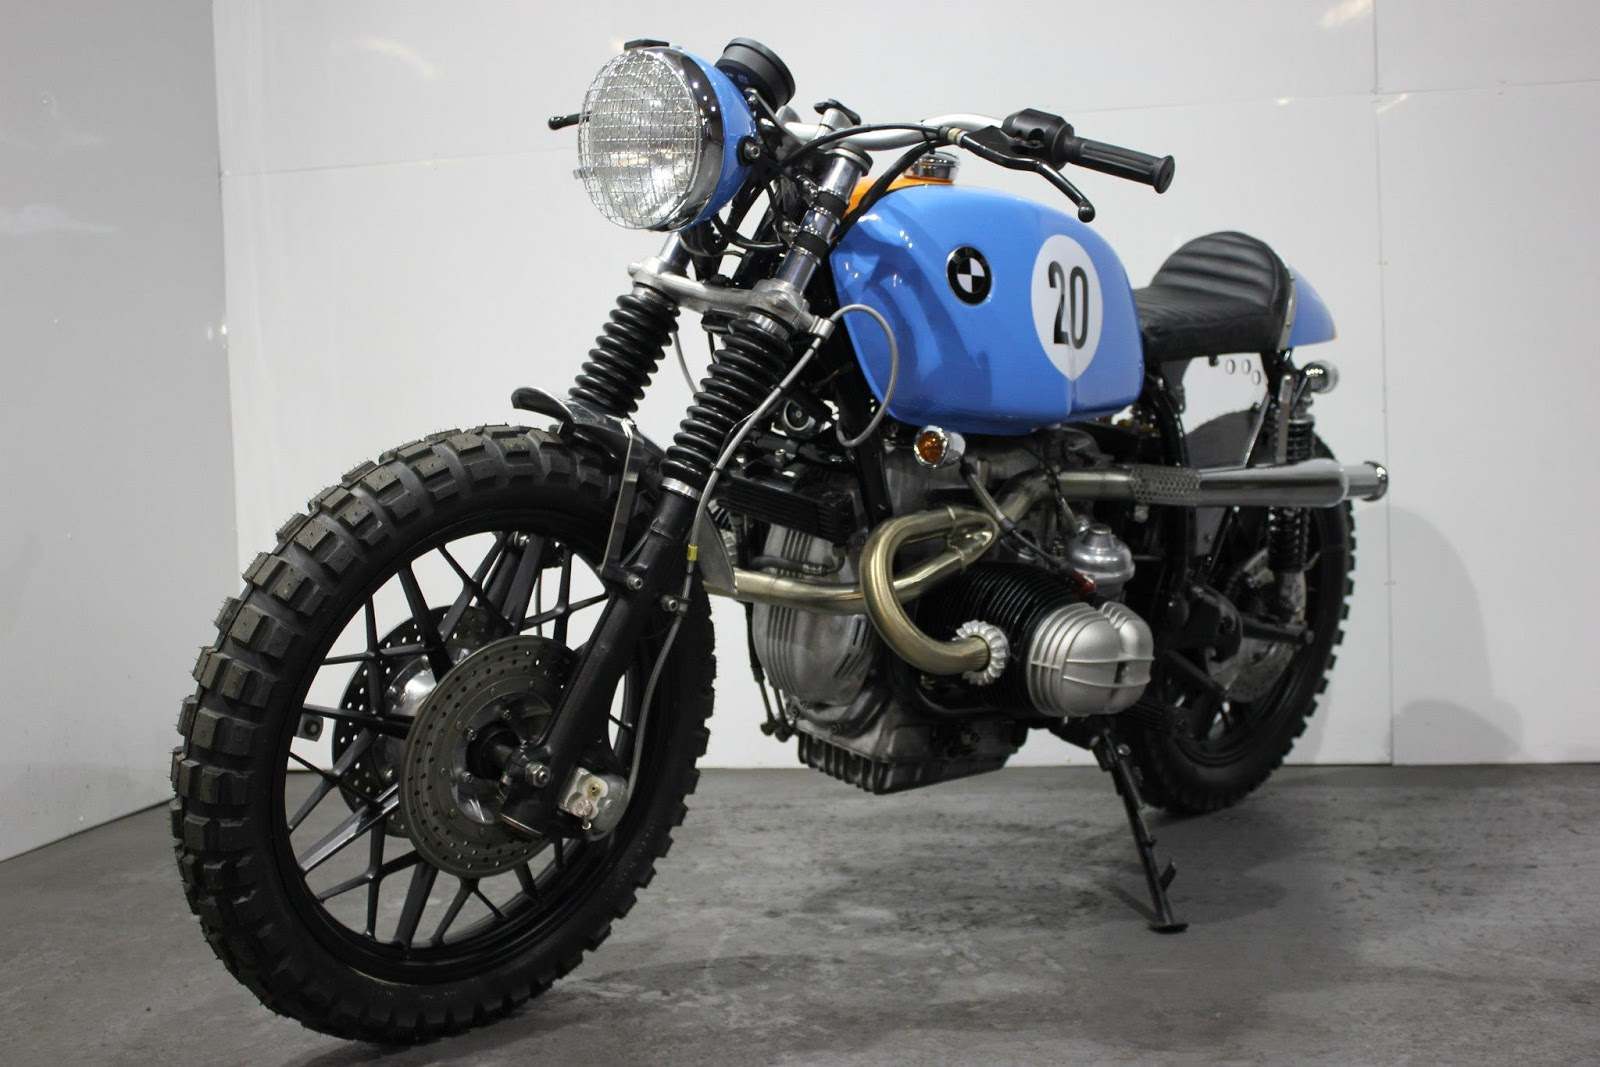 Racing Cafe Bmw R100 Rs Street Scrambler Le Man By Kevils Speed Shop